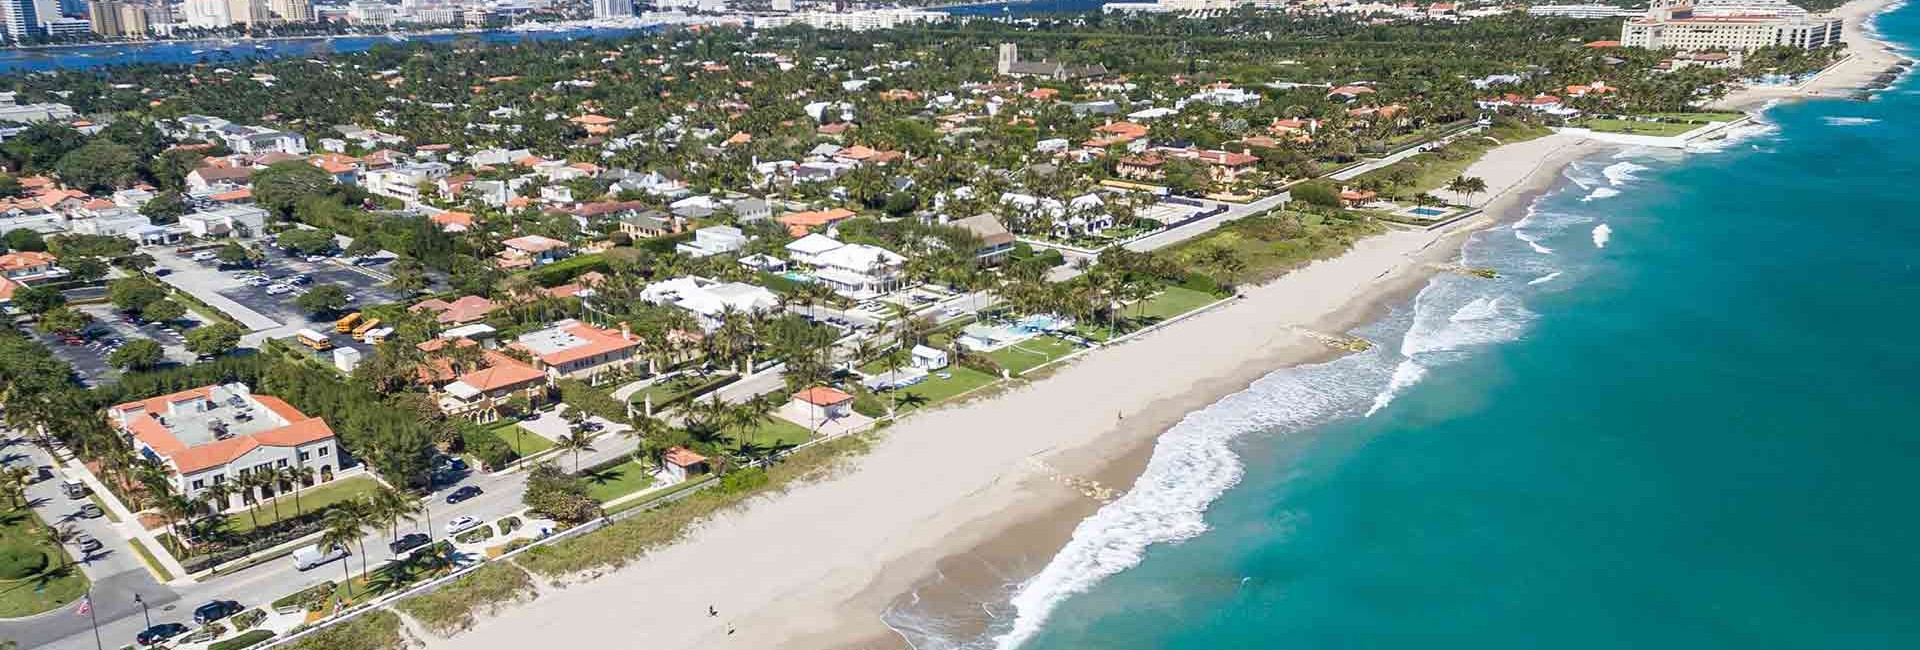 Aerial view of Palm Beach Florida